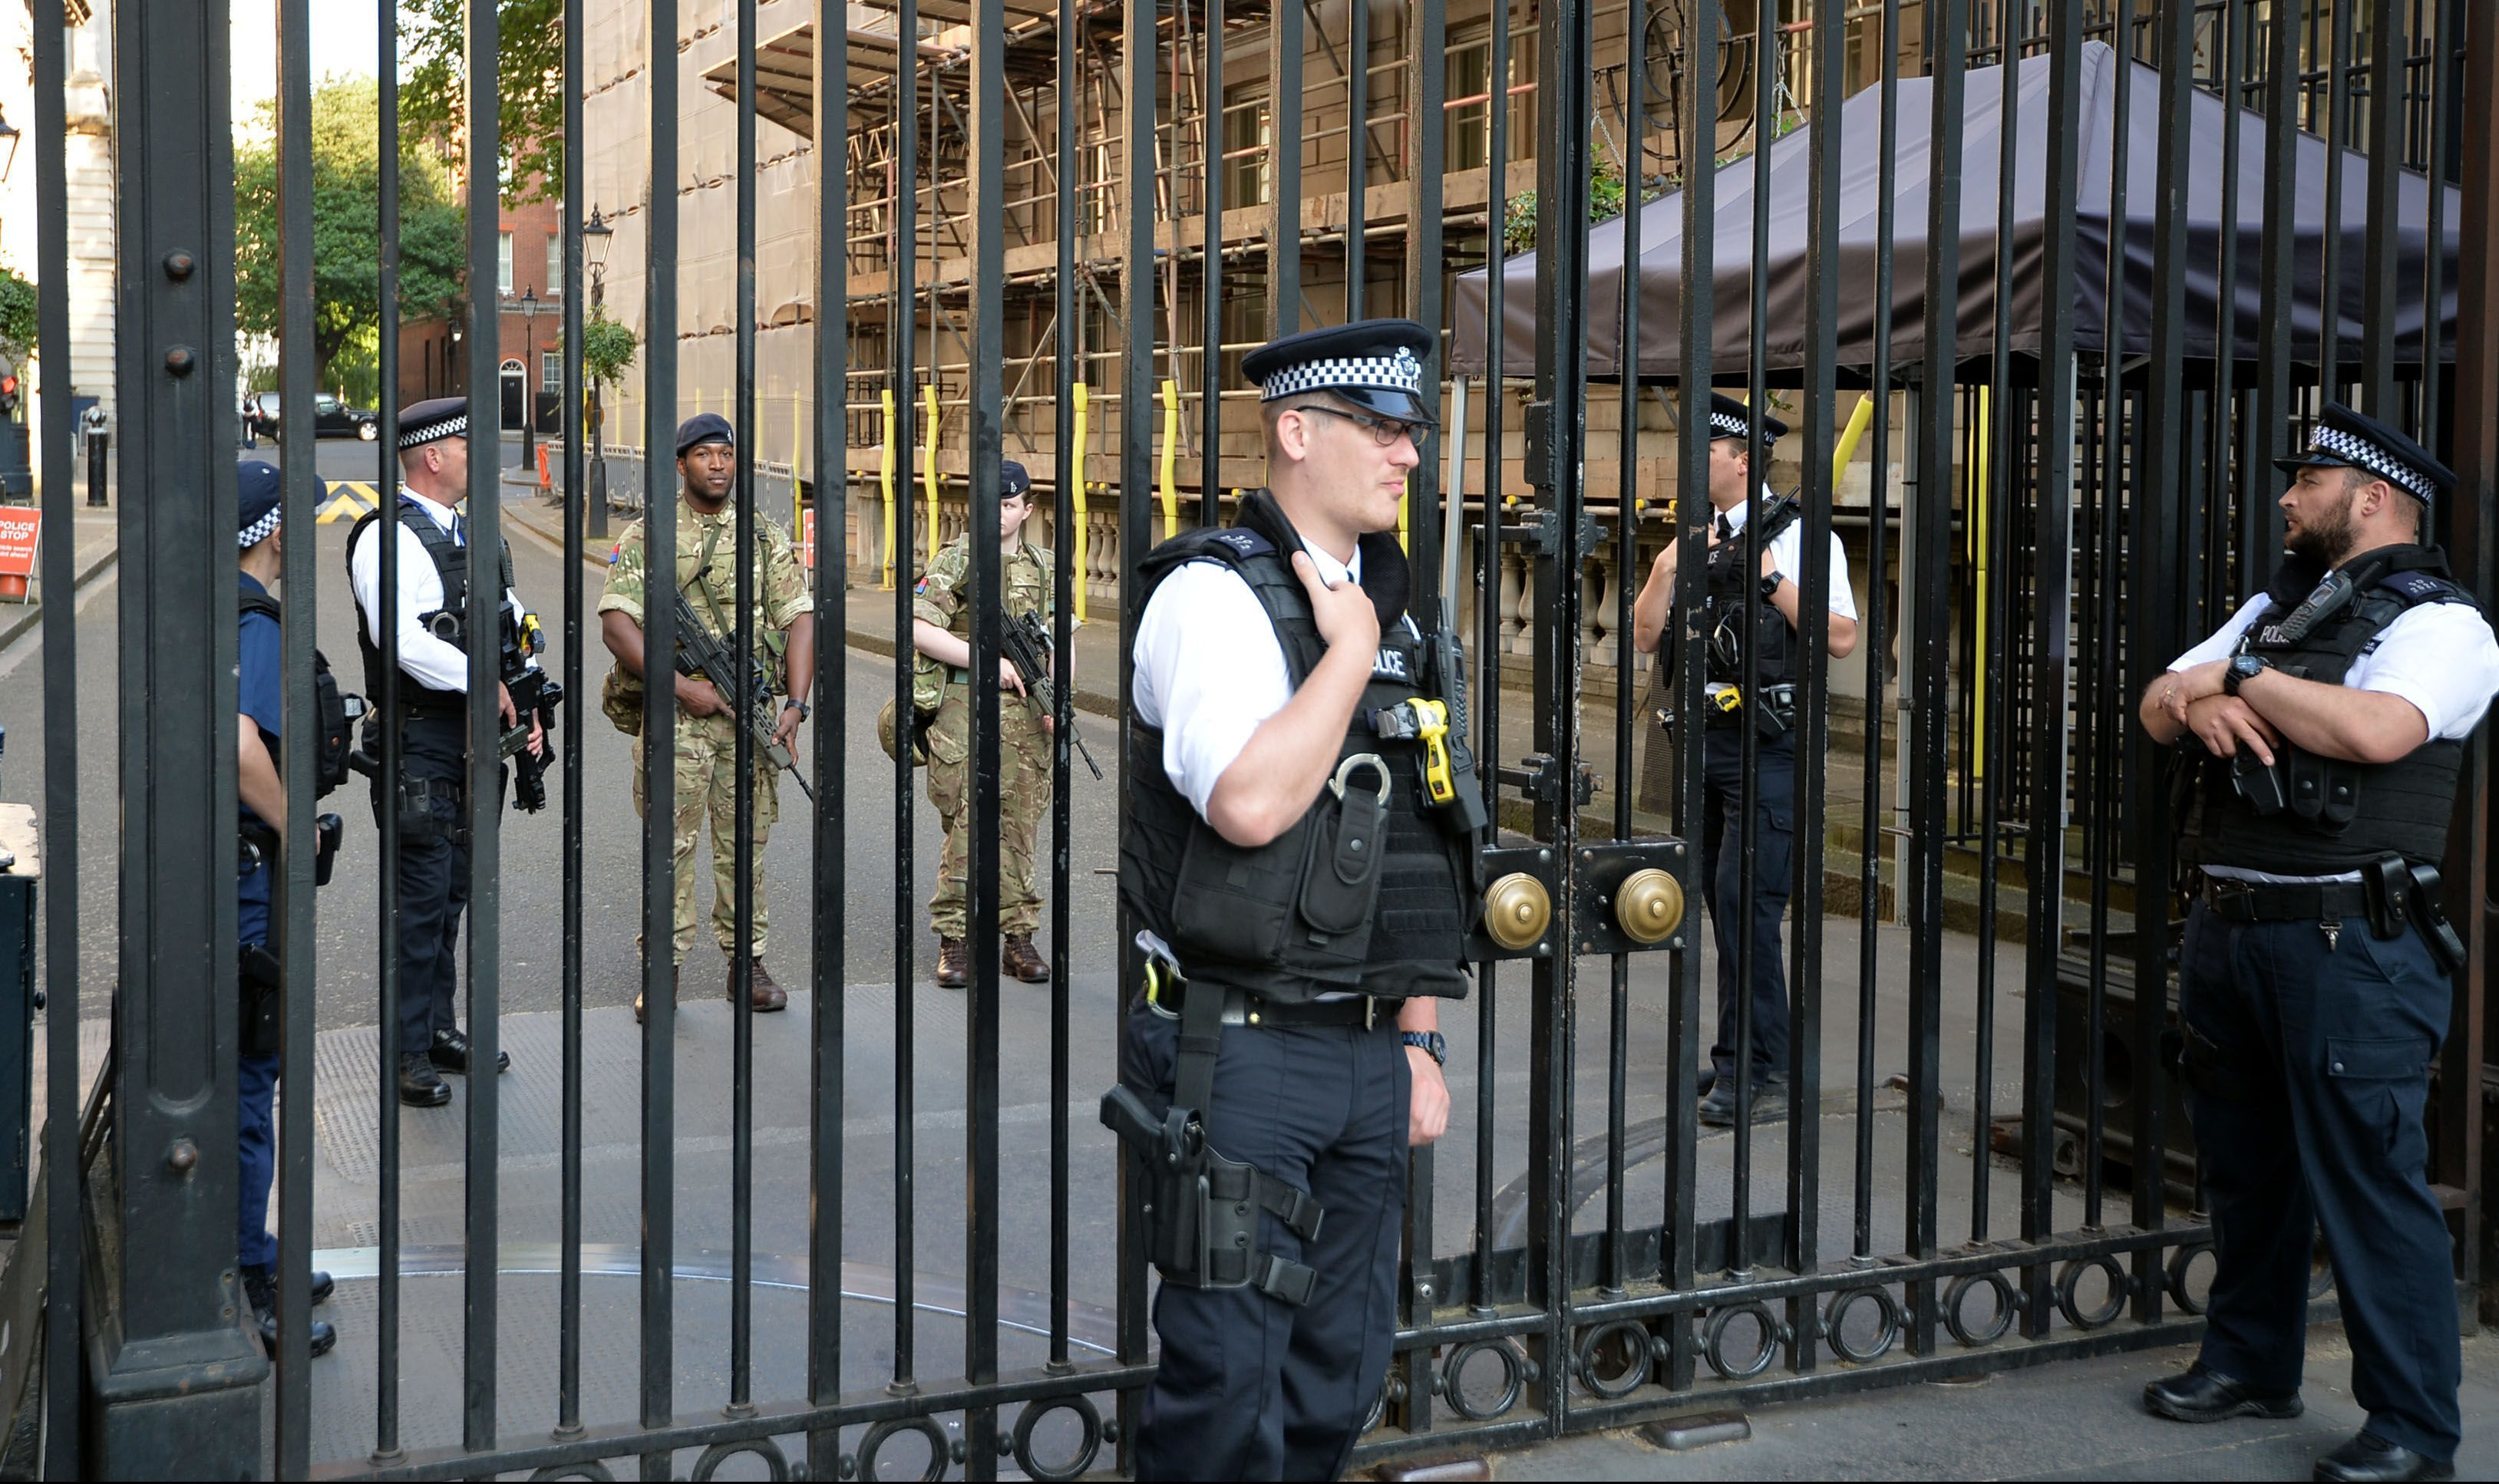 Soldiers join police in Downing Street, London, as armed troops have been deployed to guard 'key locations' under Operation Temperer